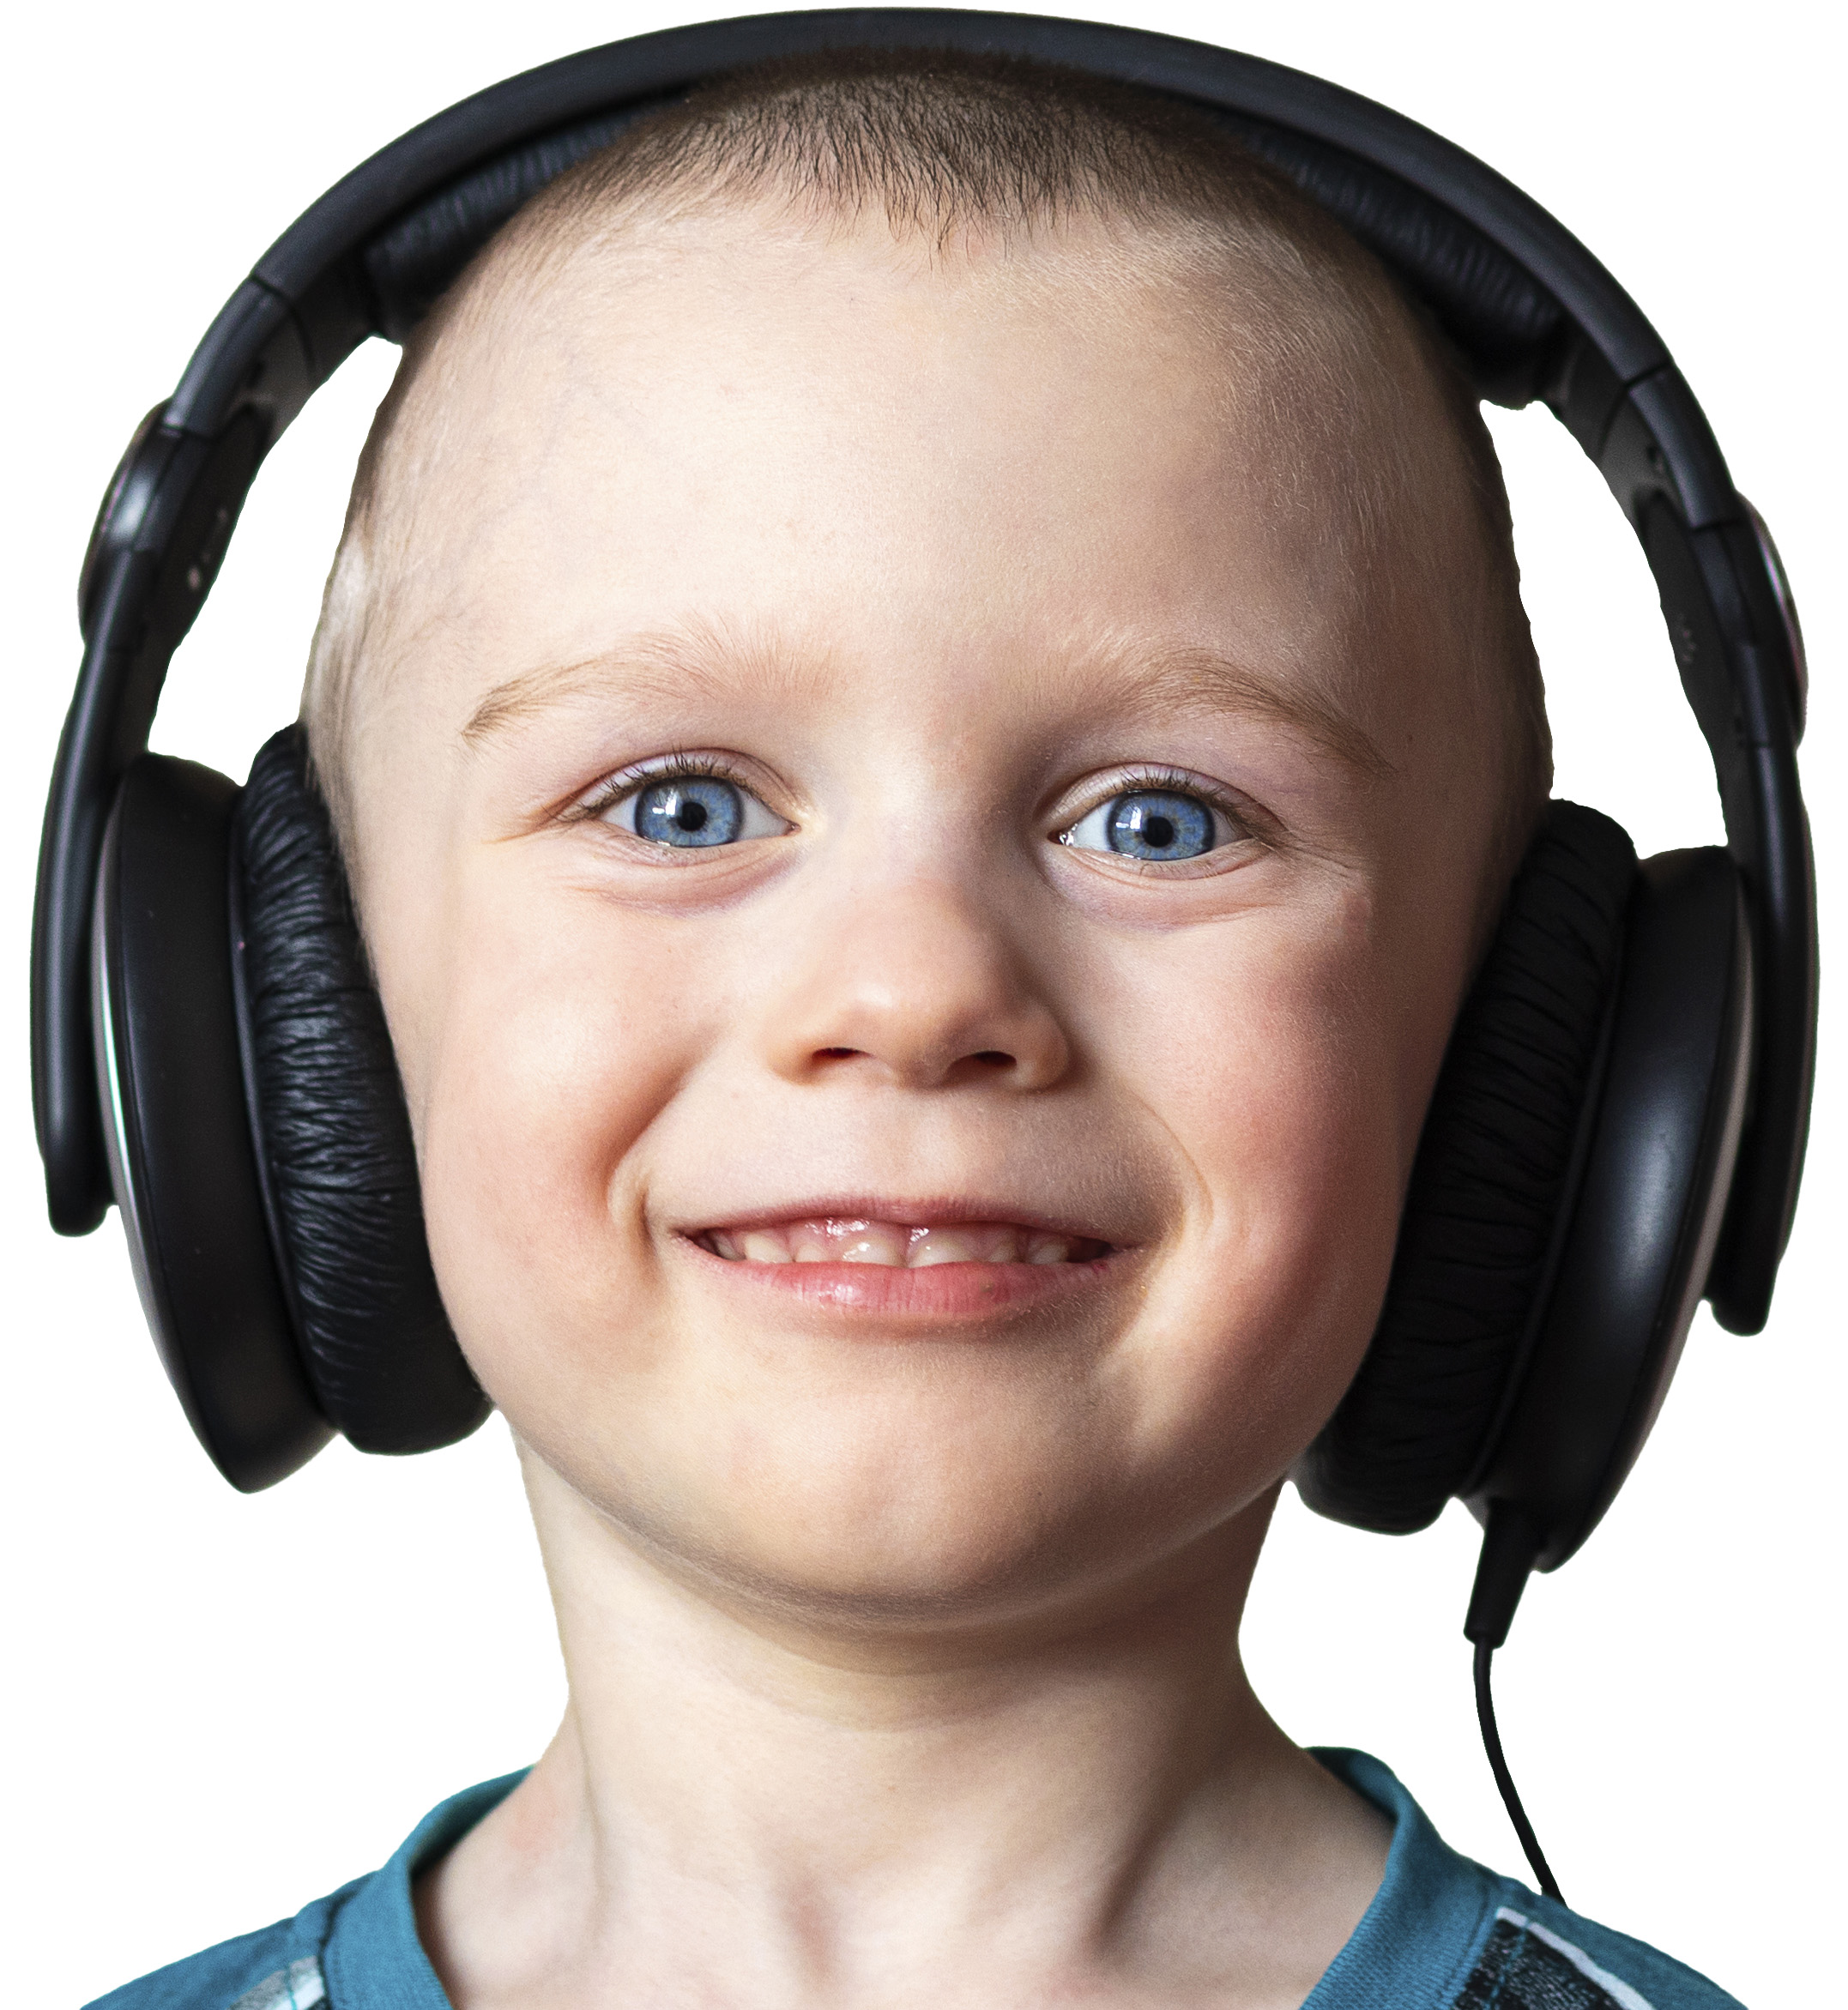 Happy child with headphones listening to music.